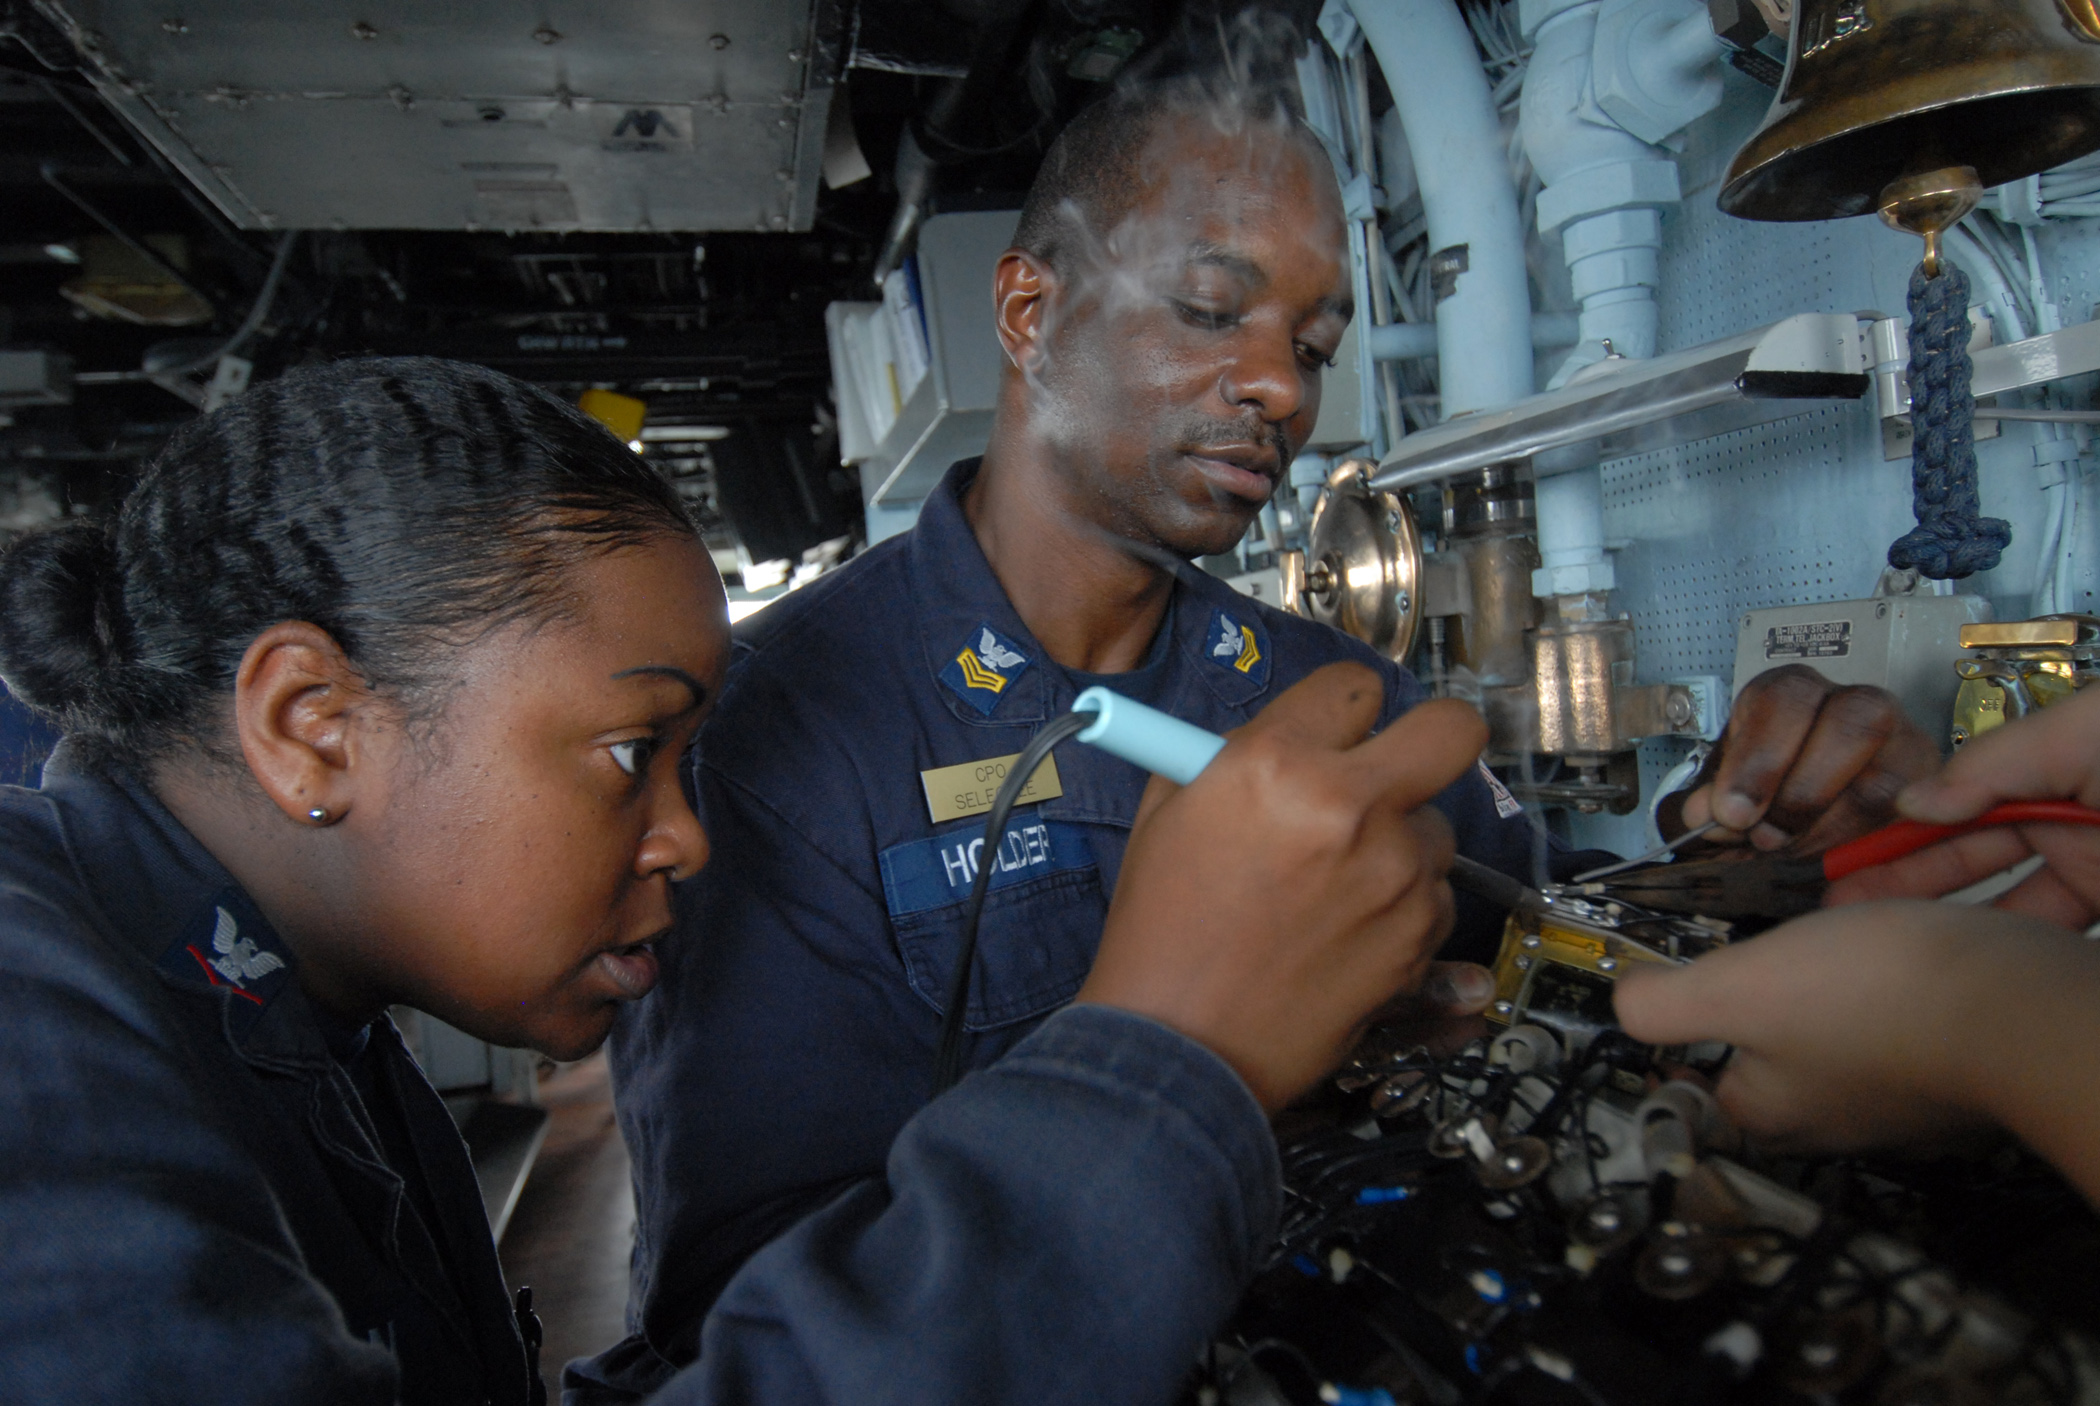 File:US Navy 110809-N-DU438-265 Electrician's Mate 3rd Class ...